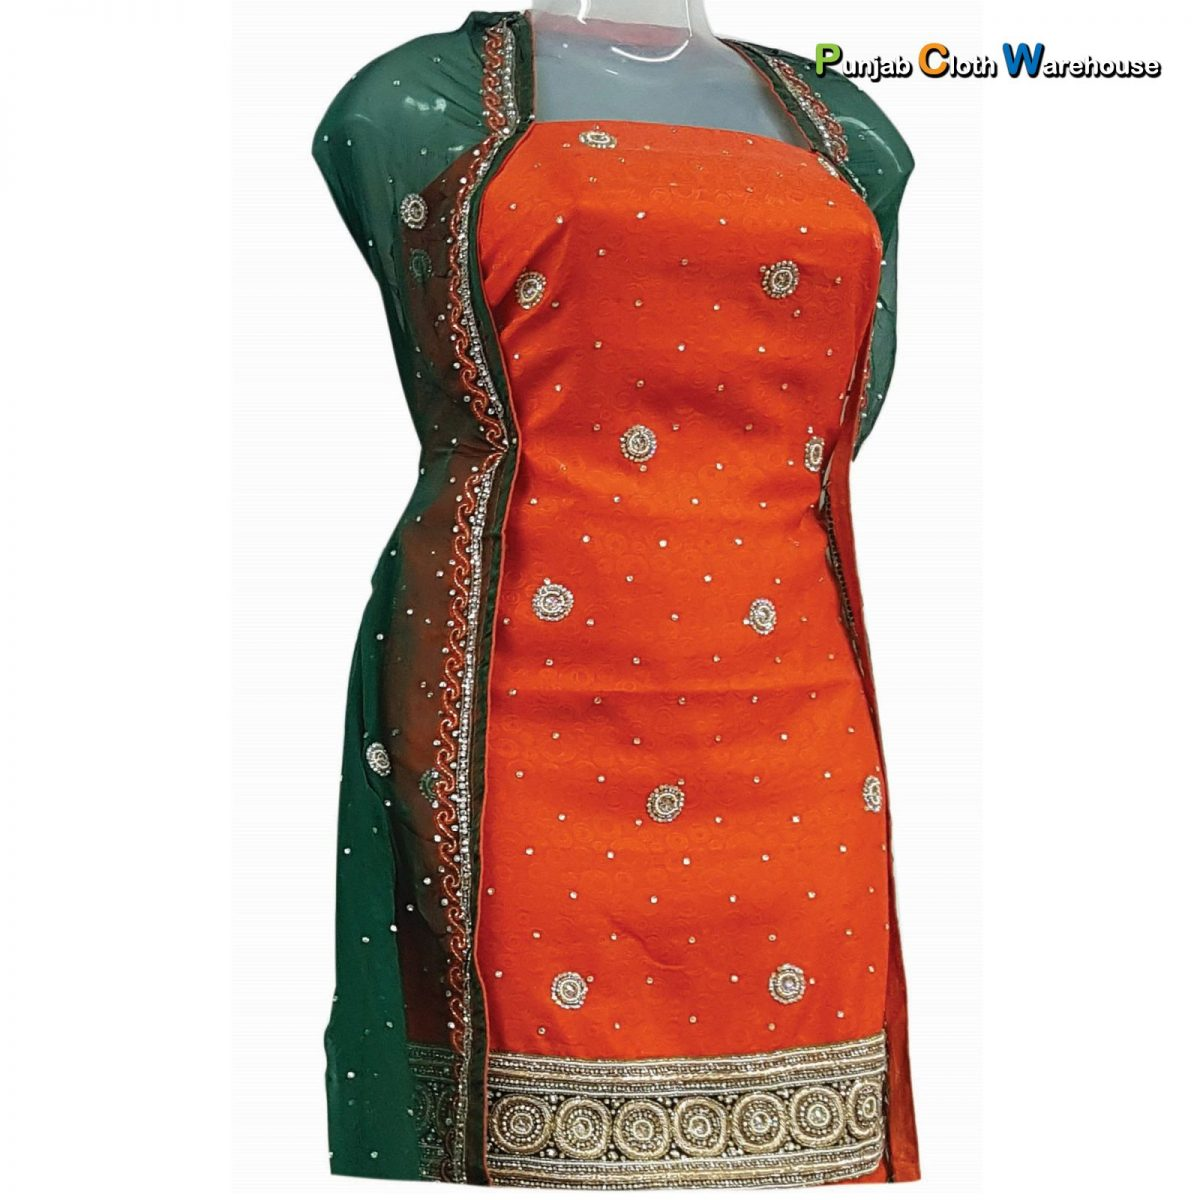 Ladies Suits - Cut Piece - Punjab Cloth Warehouse, Surrey (23)